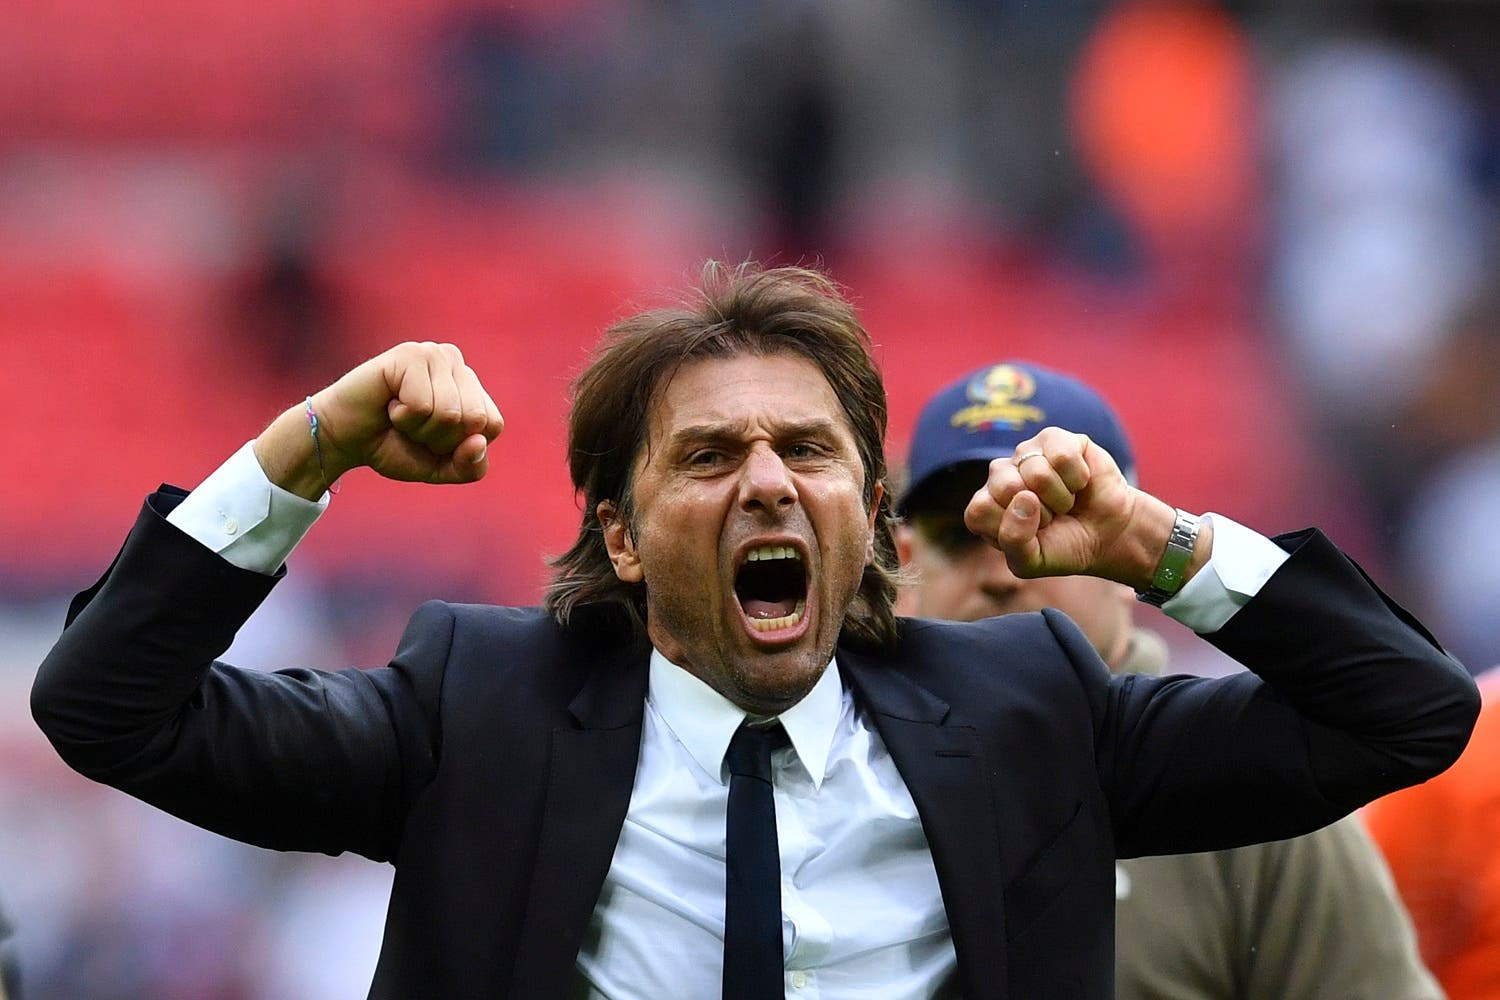 Chelsea's Italian head coach Antonio Conte (C) celebrates on the pitch at the end of the English Premier League football match between Tottenham Hotspur and Chelsea at Wembley Stadium in London, on August 20, 2017. Chelsea won 2-1. (AFP)